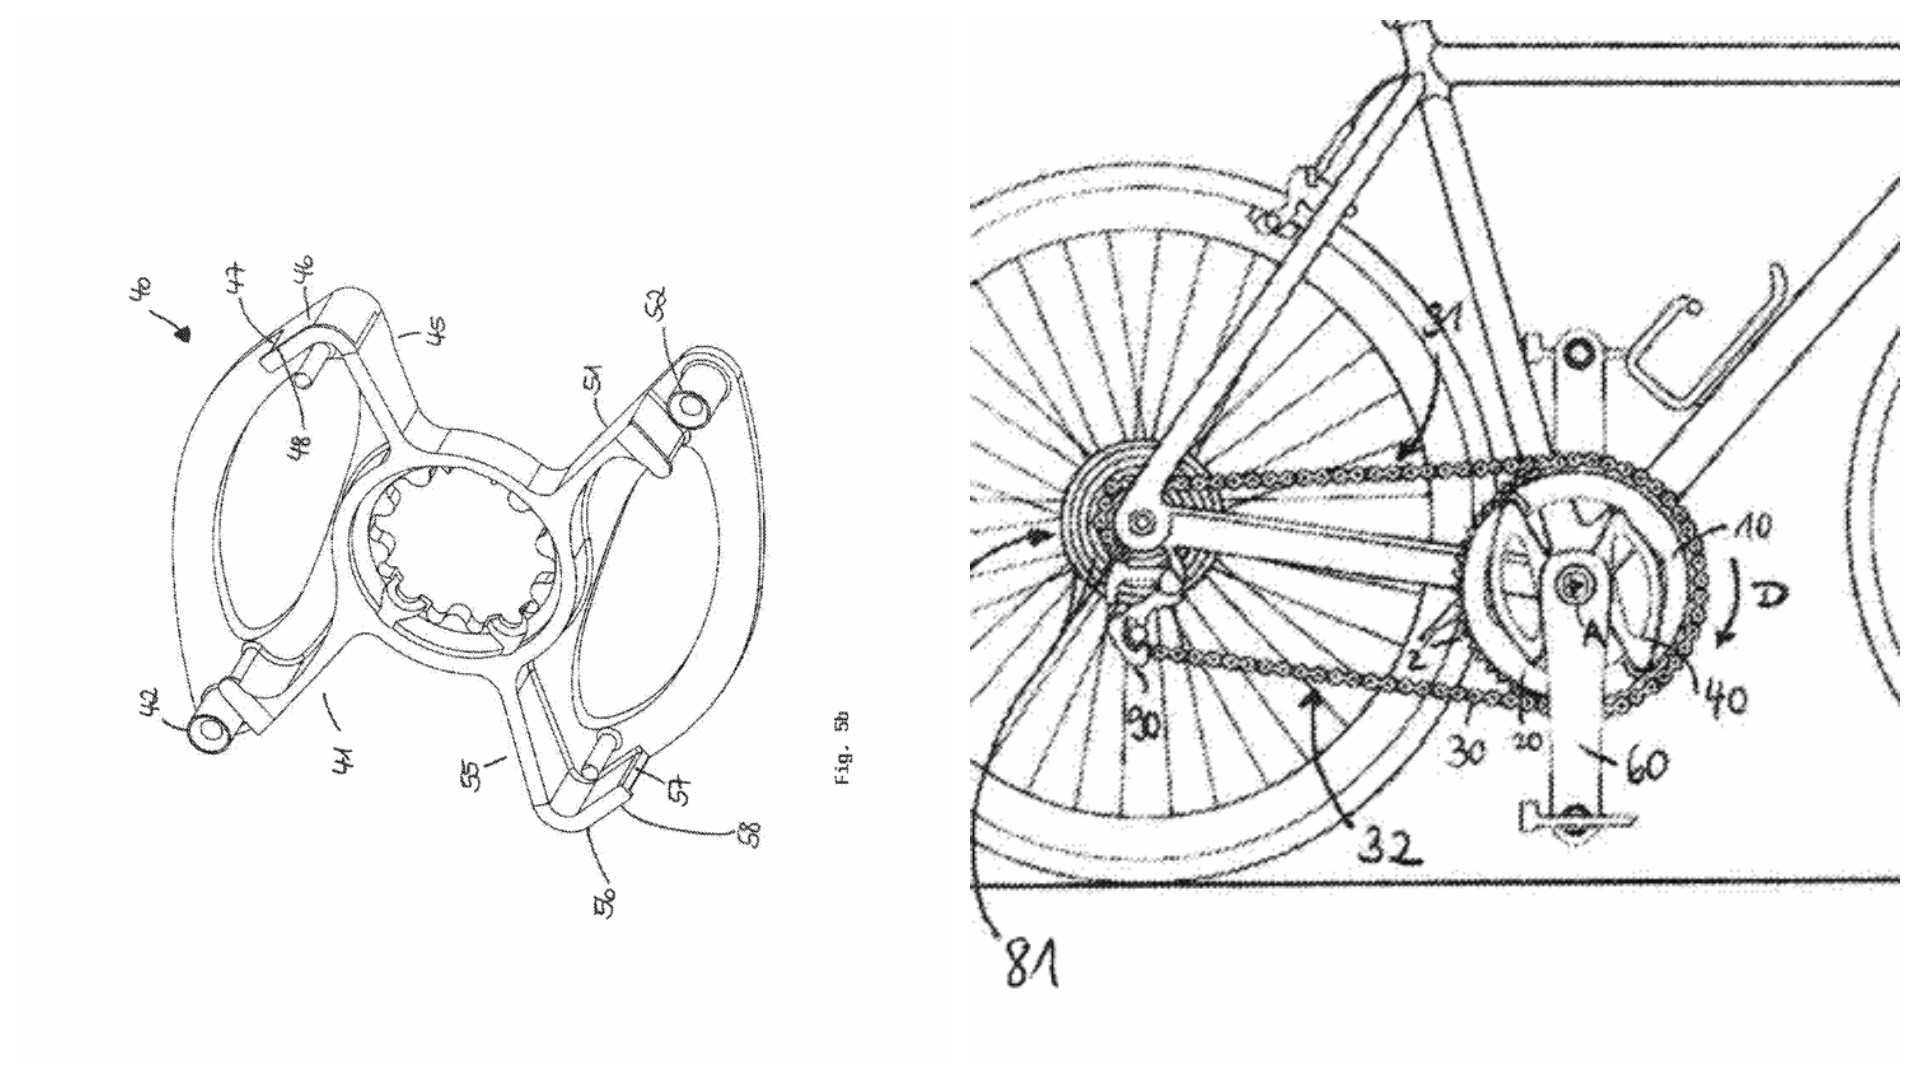 A closer look at the spider used as part of SRAM's patented design